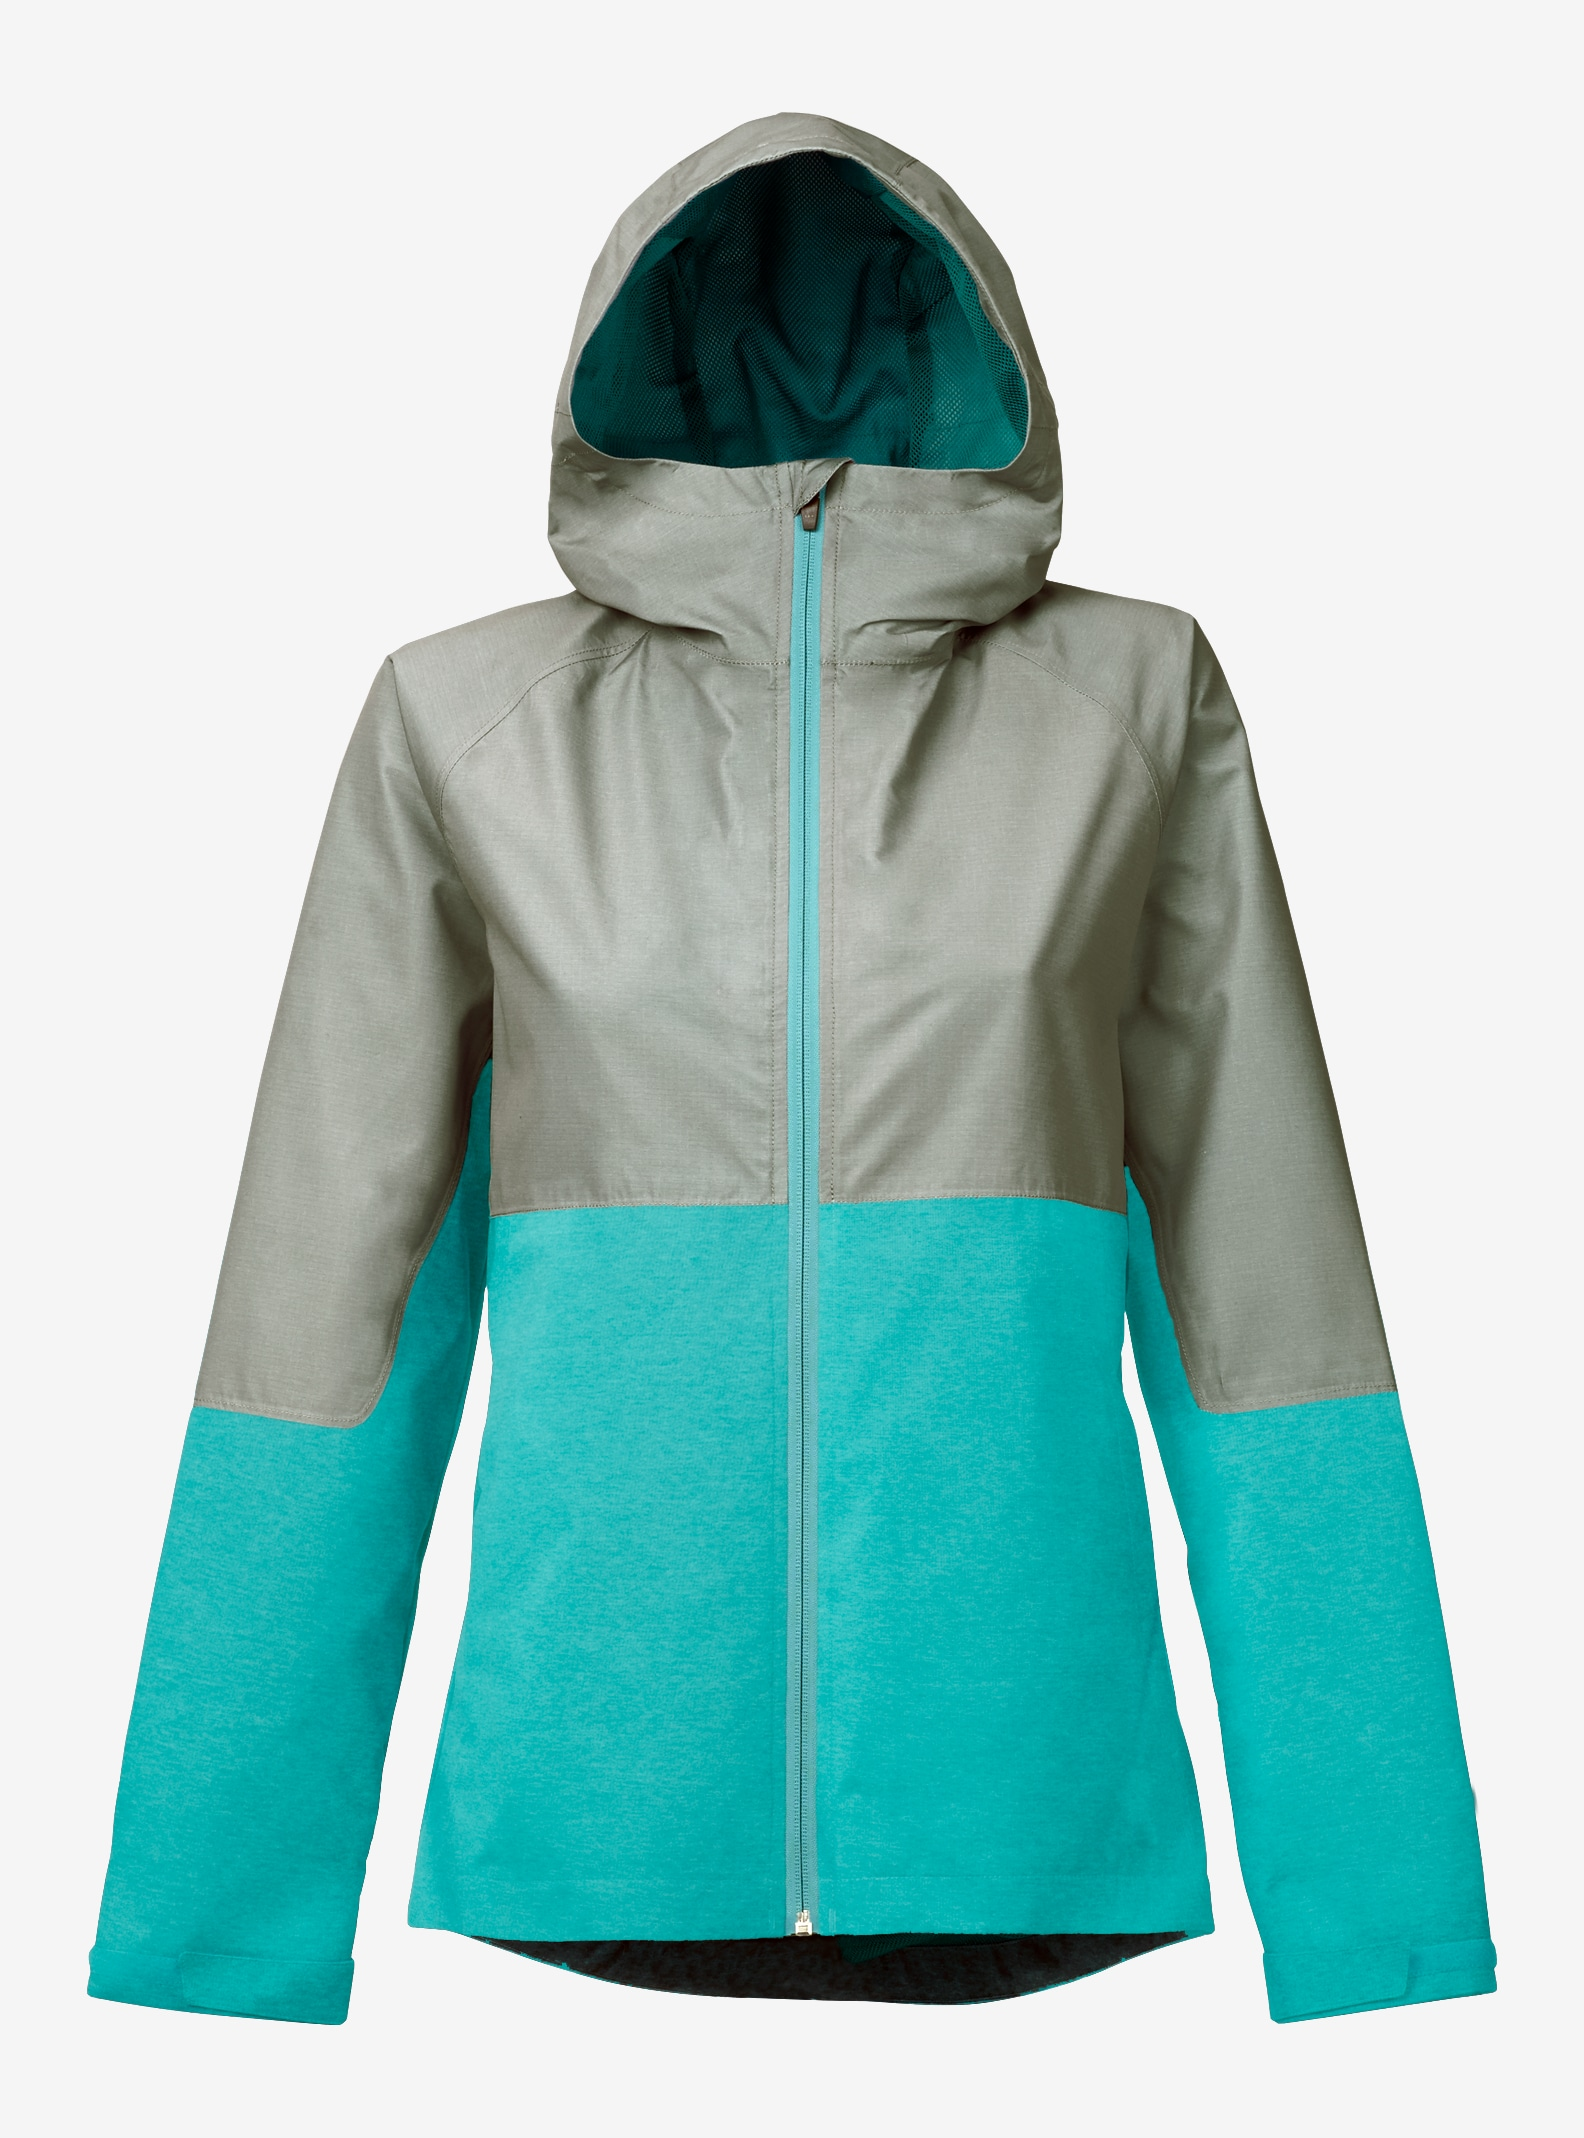 Burton Girls' Berkley Rain Jacket shown in Lichen Green Heather / Everglade Heather